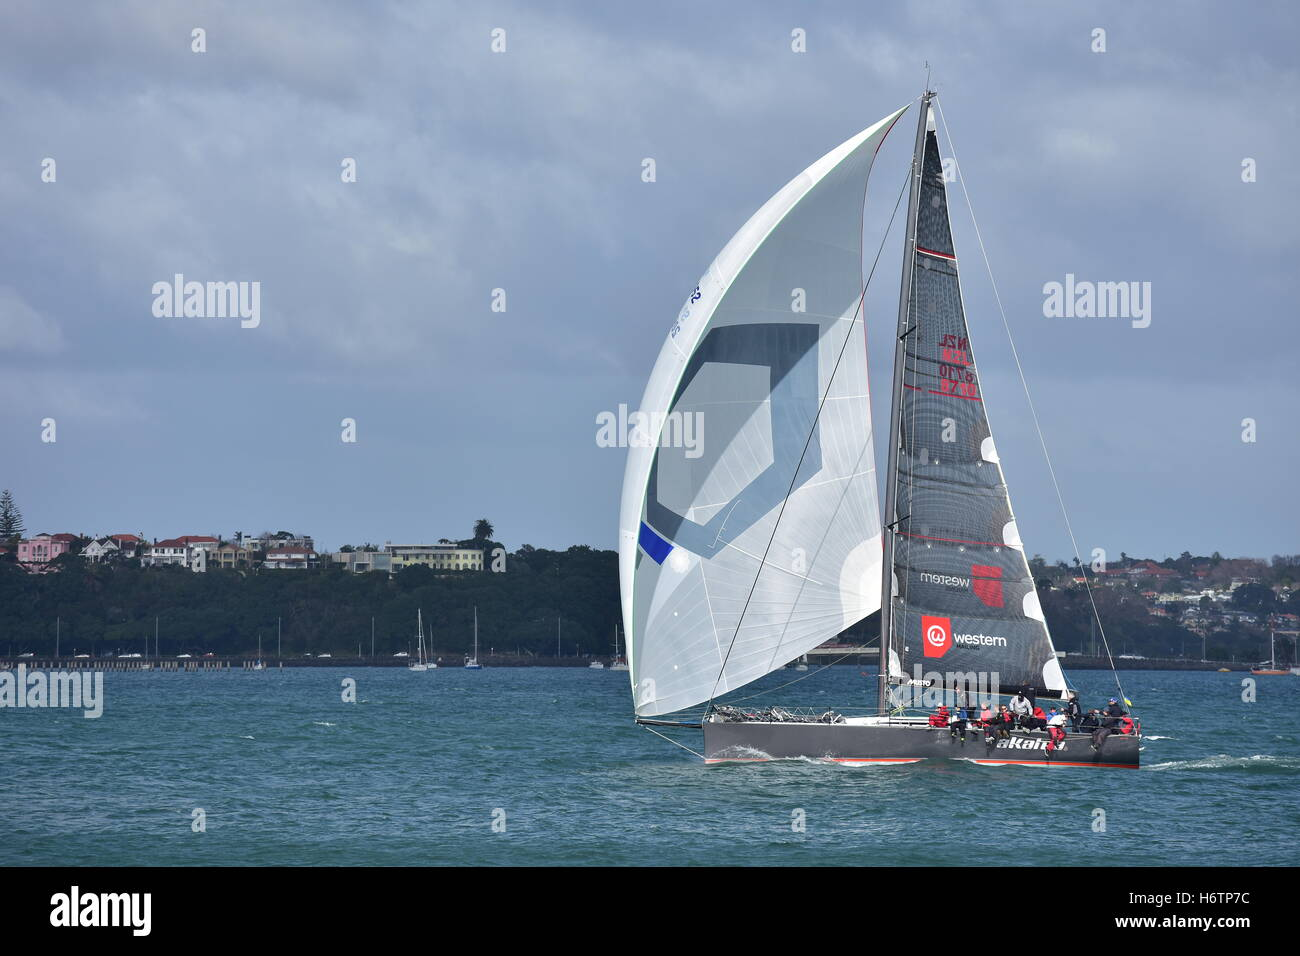 Sailing Auckland waters between Devonport and the East Coast Bays. - Stock Image